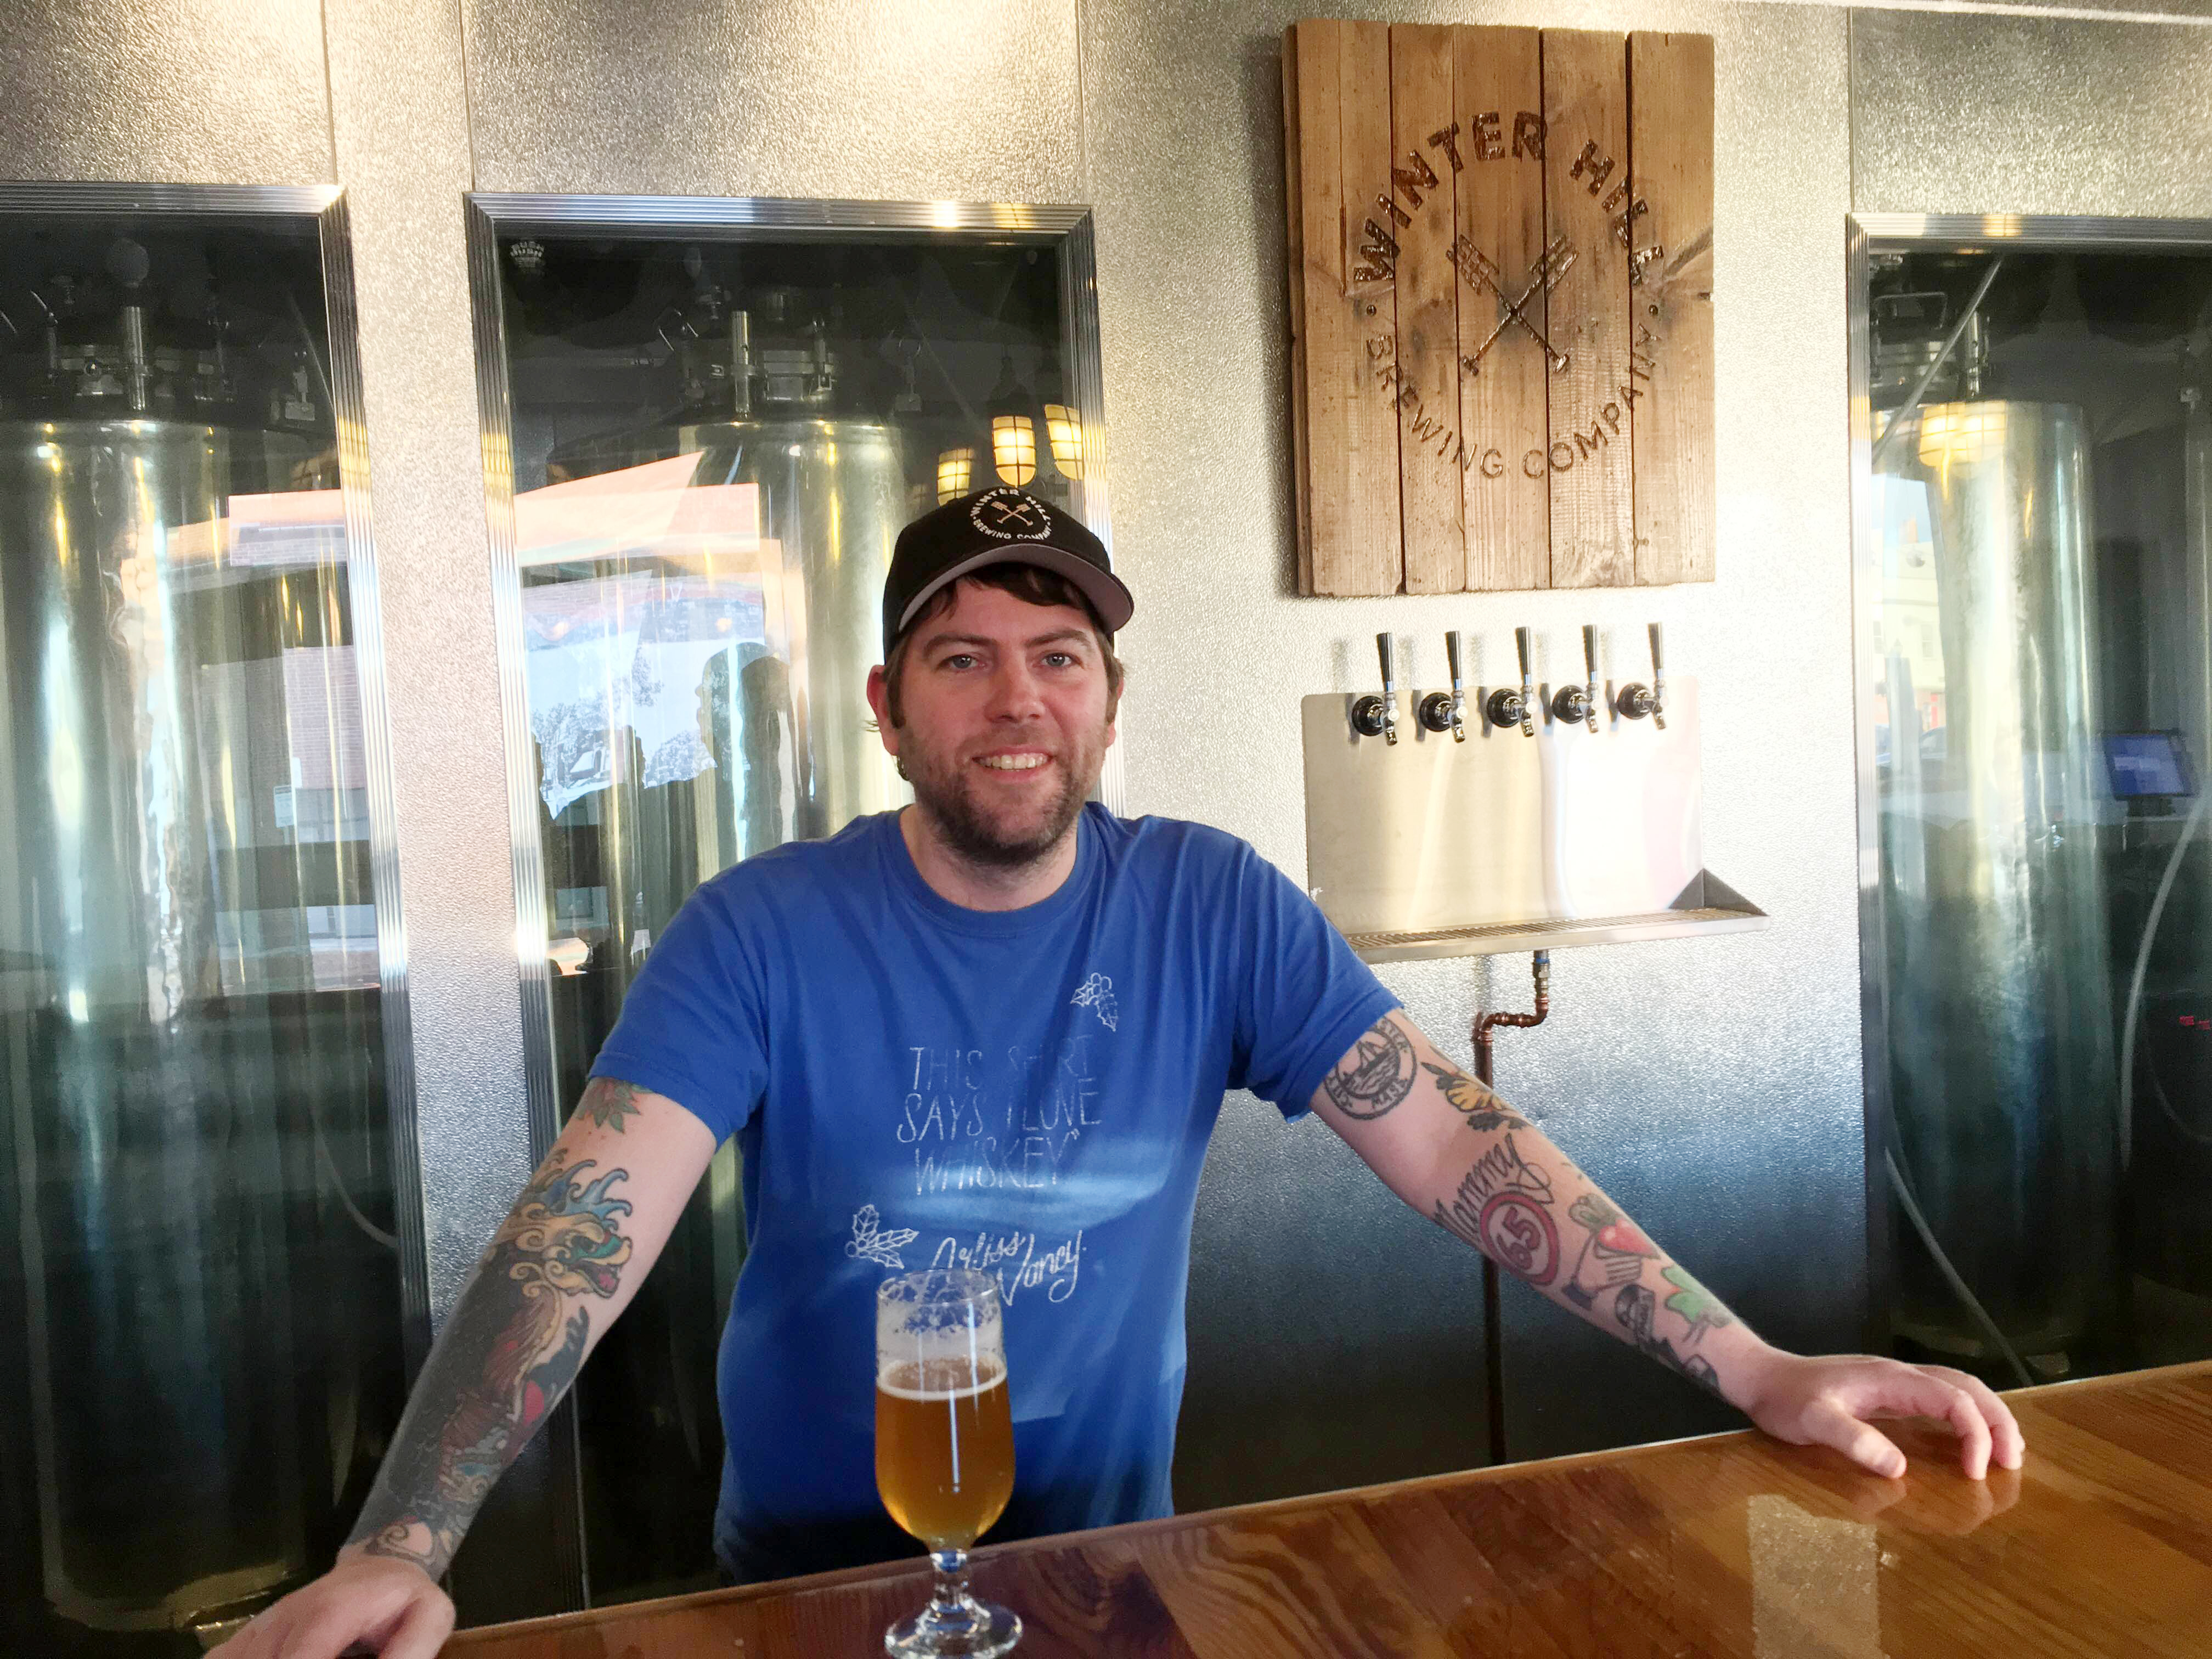 Jeff Rowe at Winter Hill Brewing Company